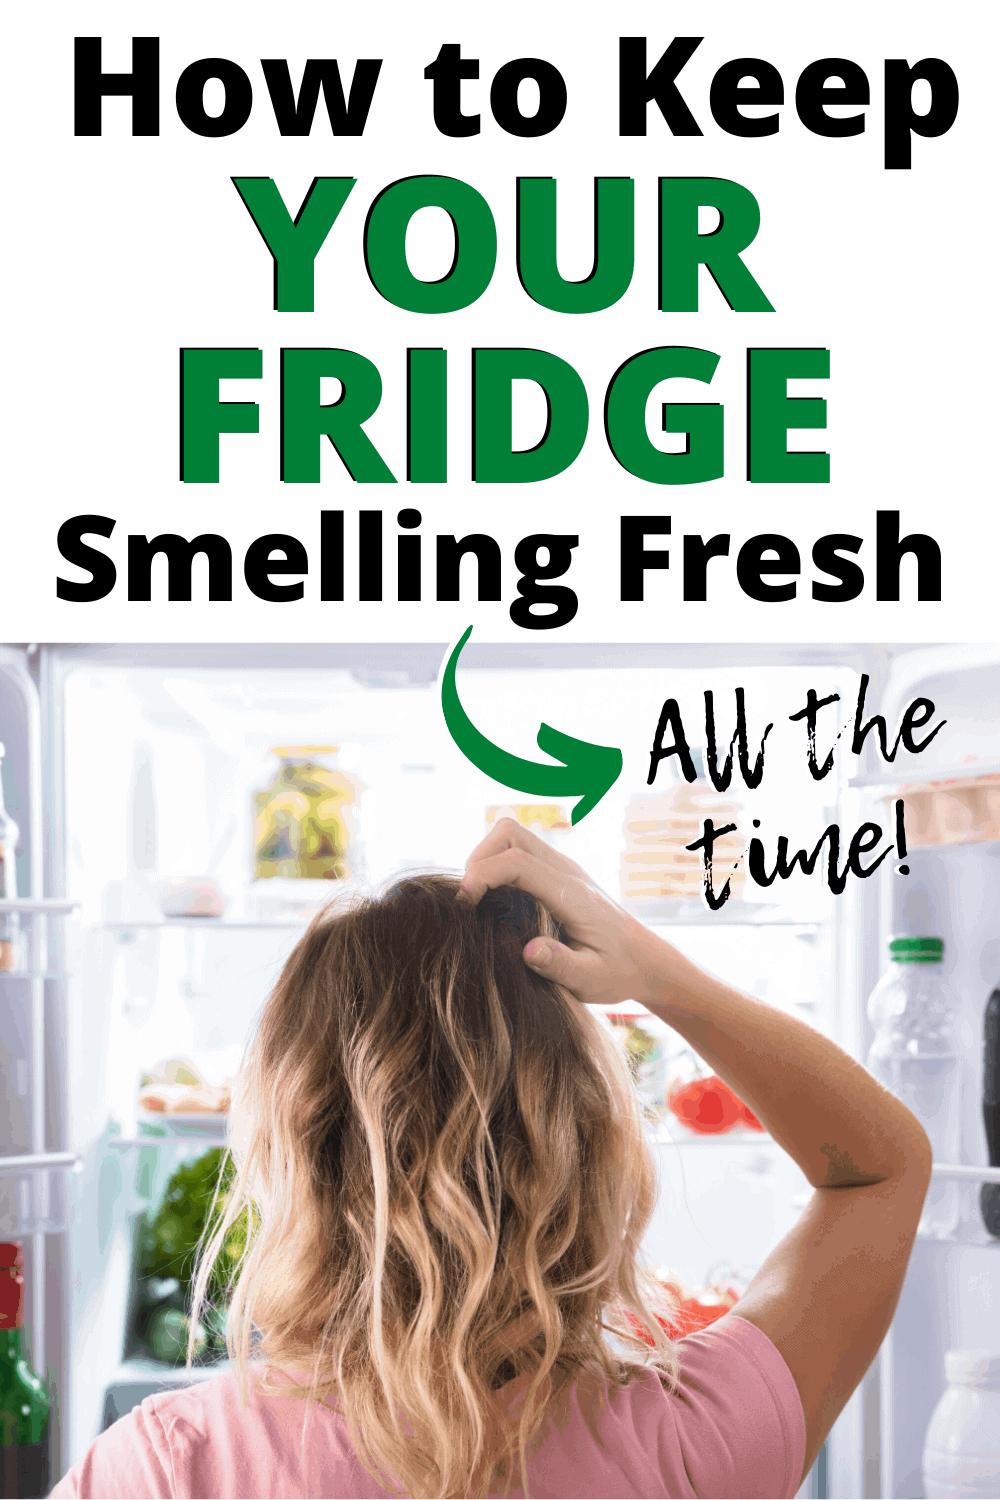 How to keep your fridge smelling fresh! 10 easy ways to deodorize your refrigerator naturally, and remove those bad odors for good.